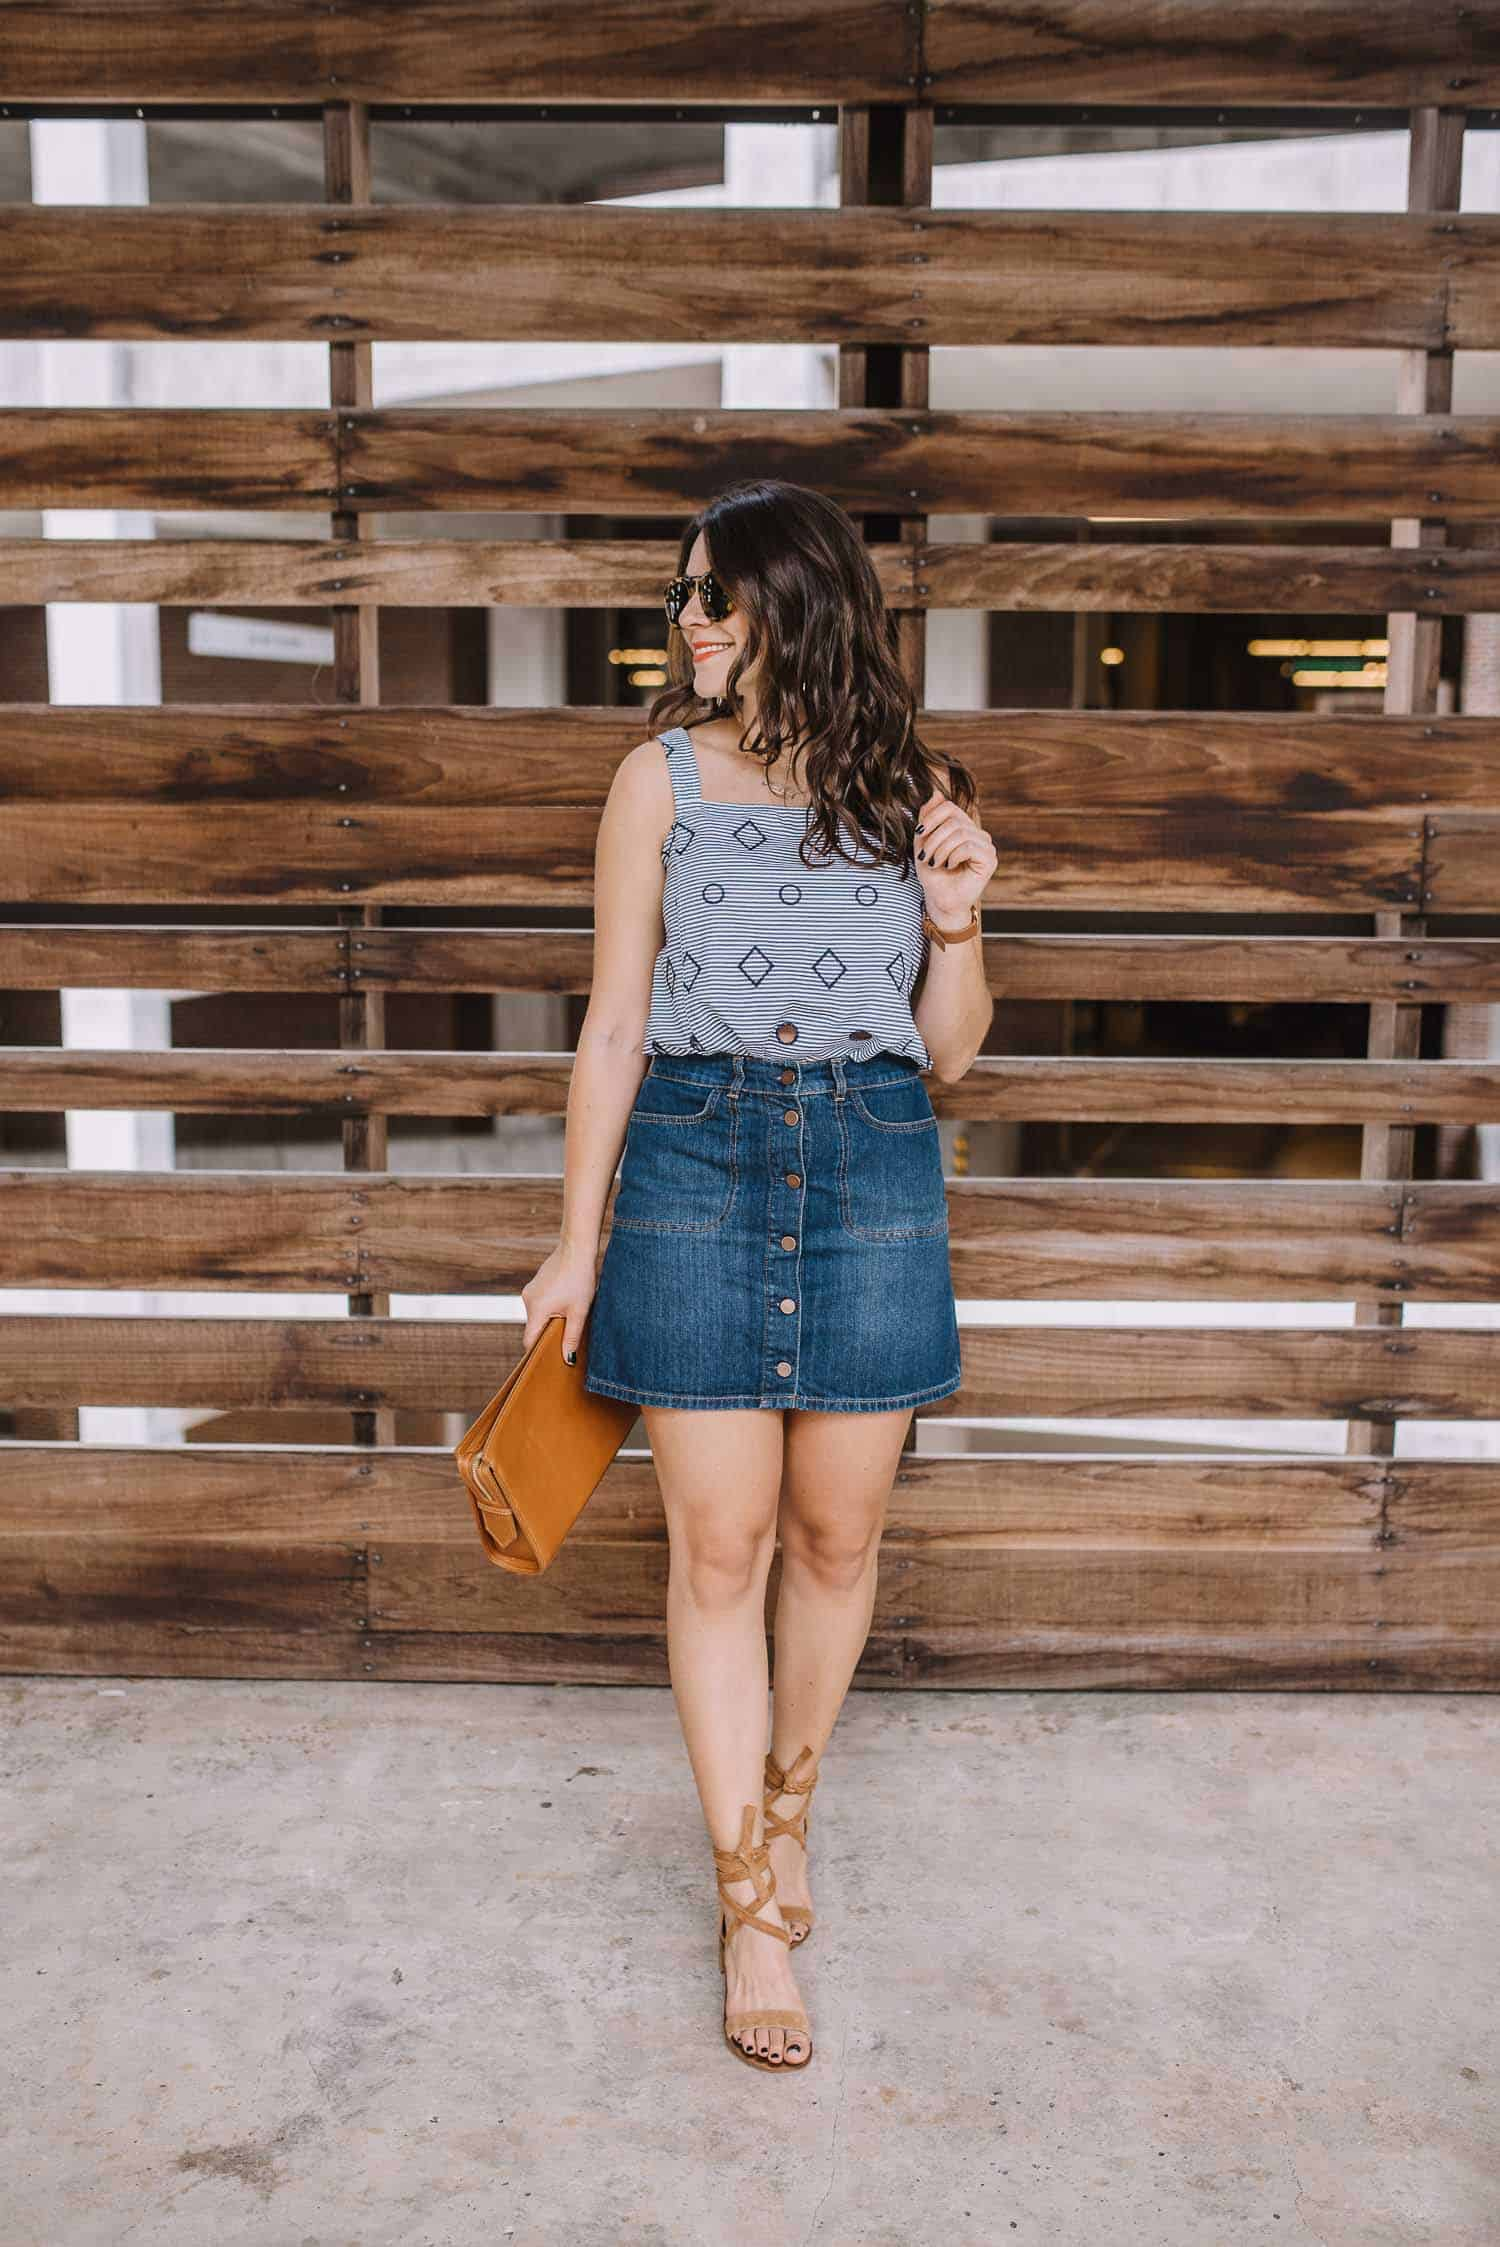 how to style a denim skirt, summer outfit ideas - My Style Vita